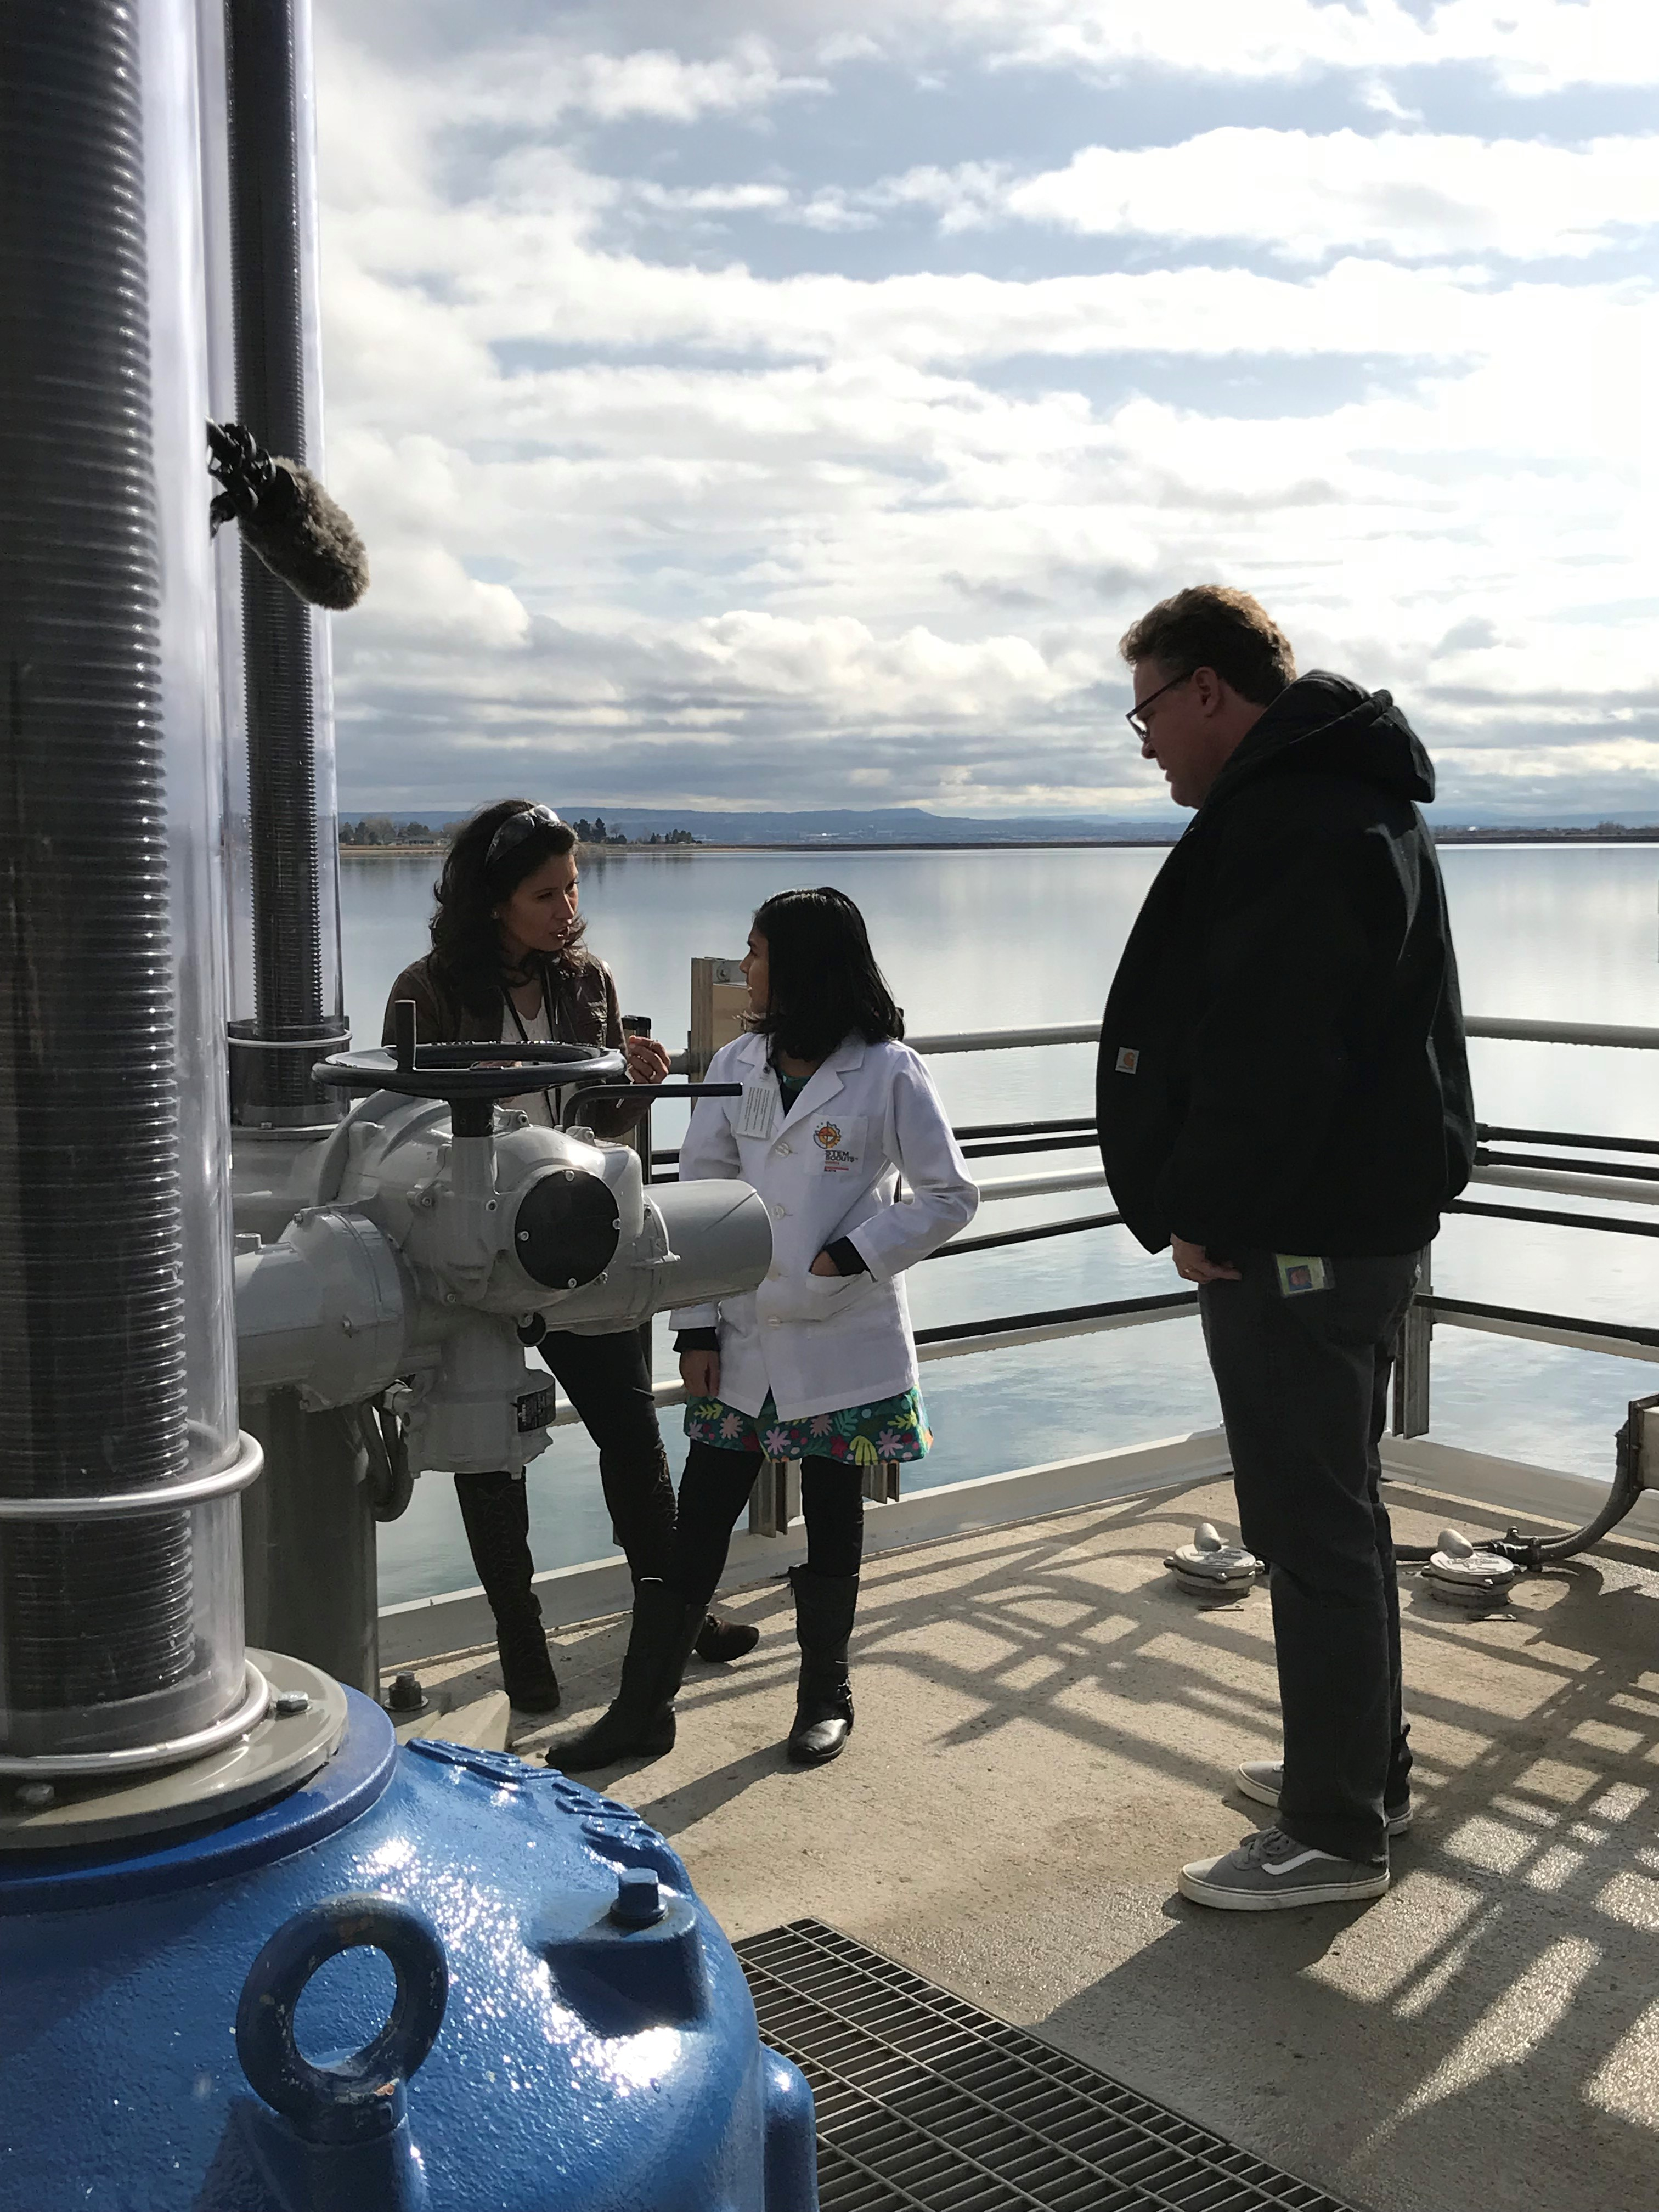 Selene Hernandez Ruiz, Denver Water's water quality lab manager (left), and Matt Bond, Denver Water's youth education manager (right), show how mountain water goes into the Marston Treatment Plant.